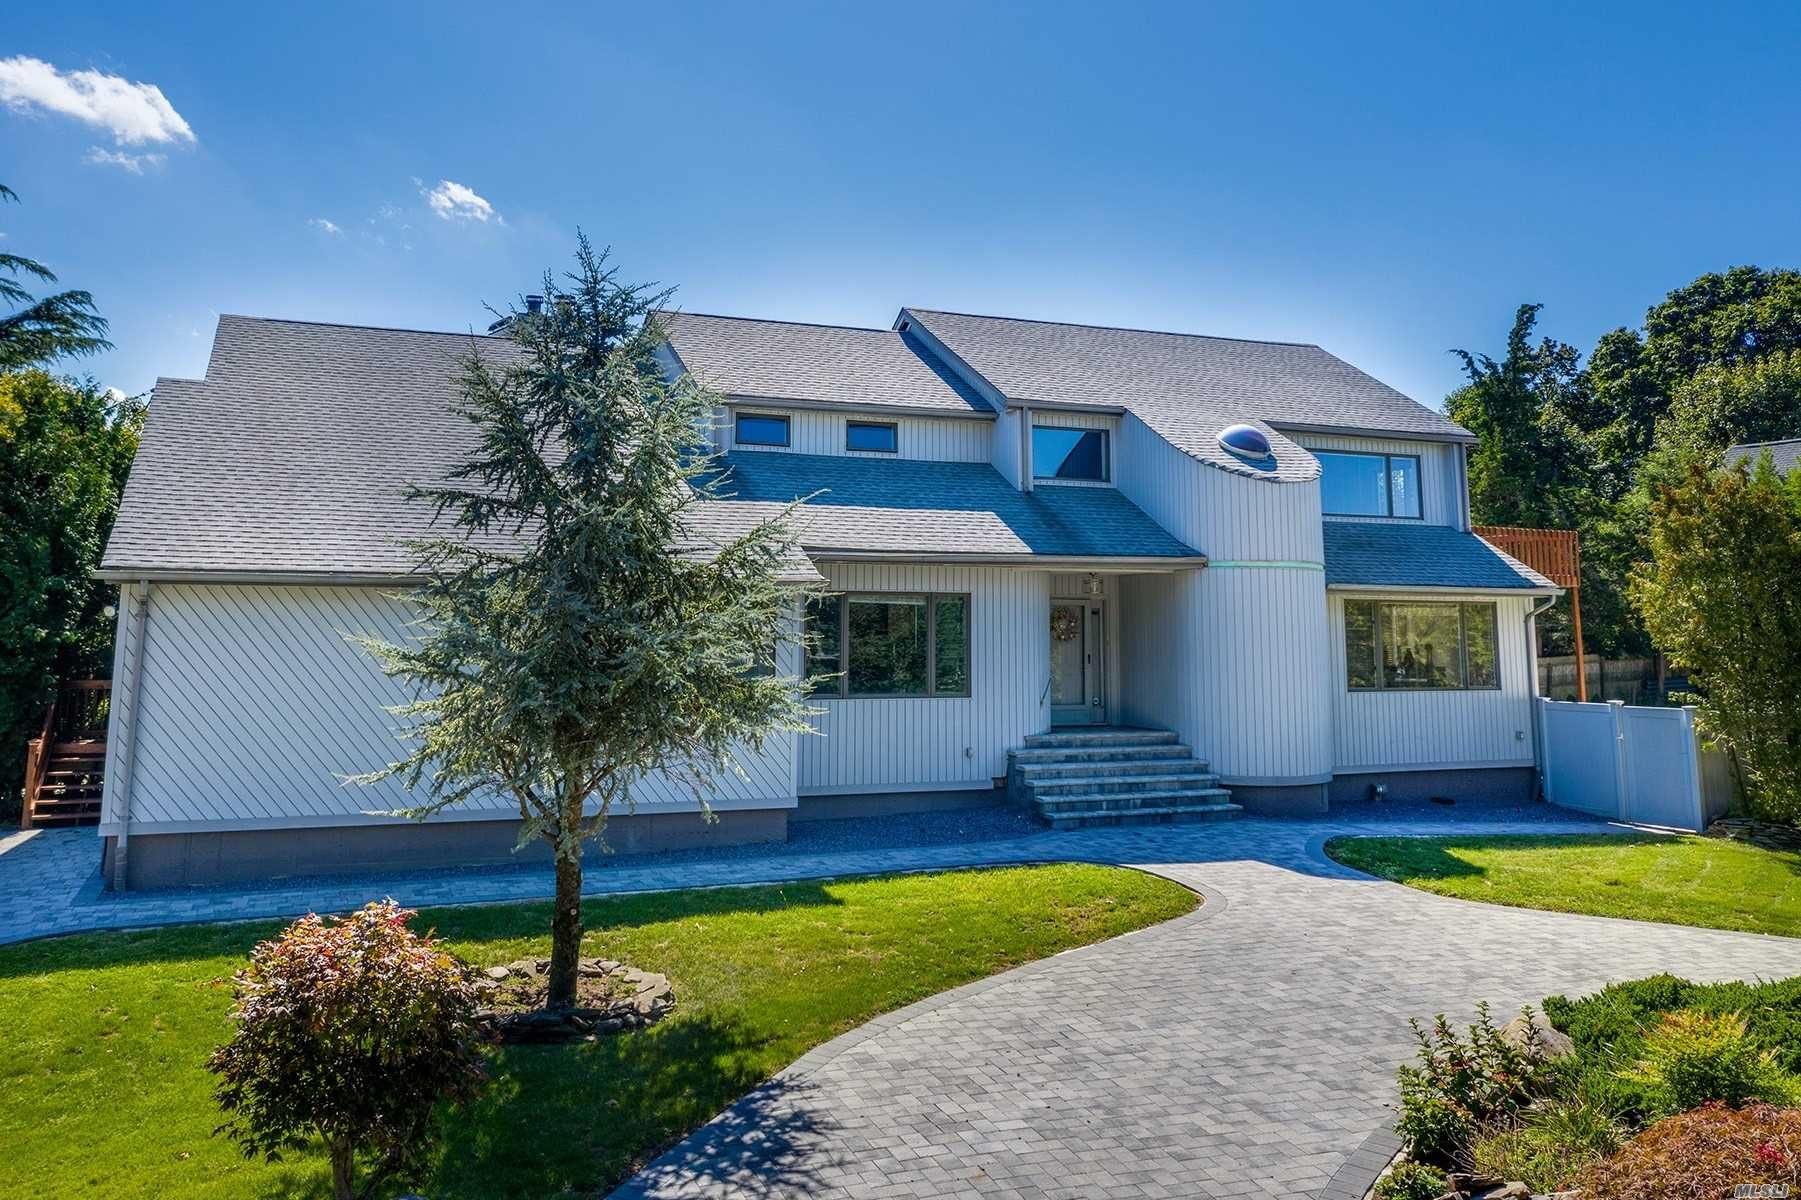 28 Seacliff Avenue, Miller Place, NY 11764 - MLS#: 3188603